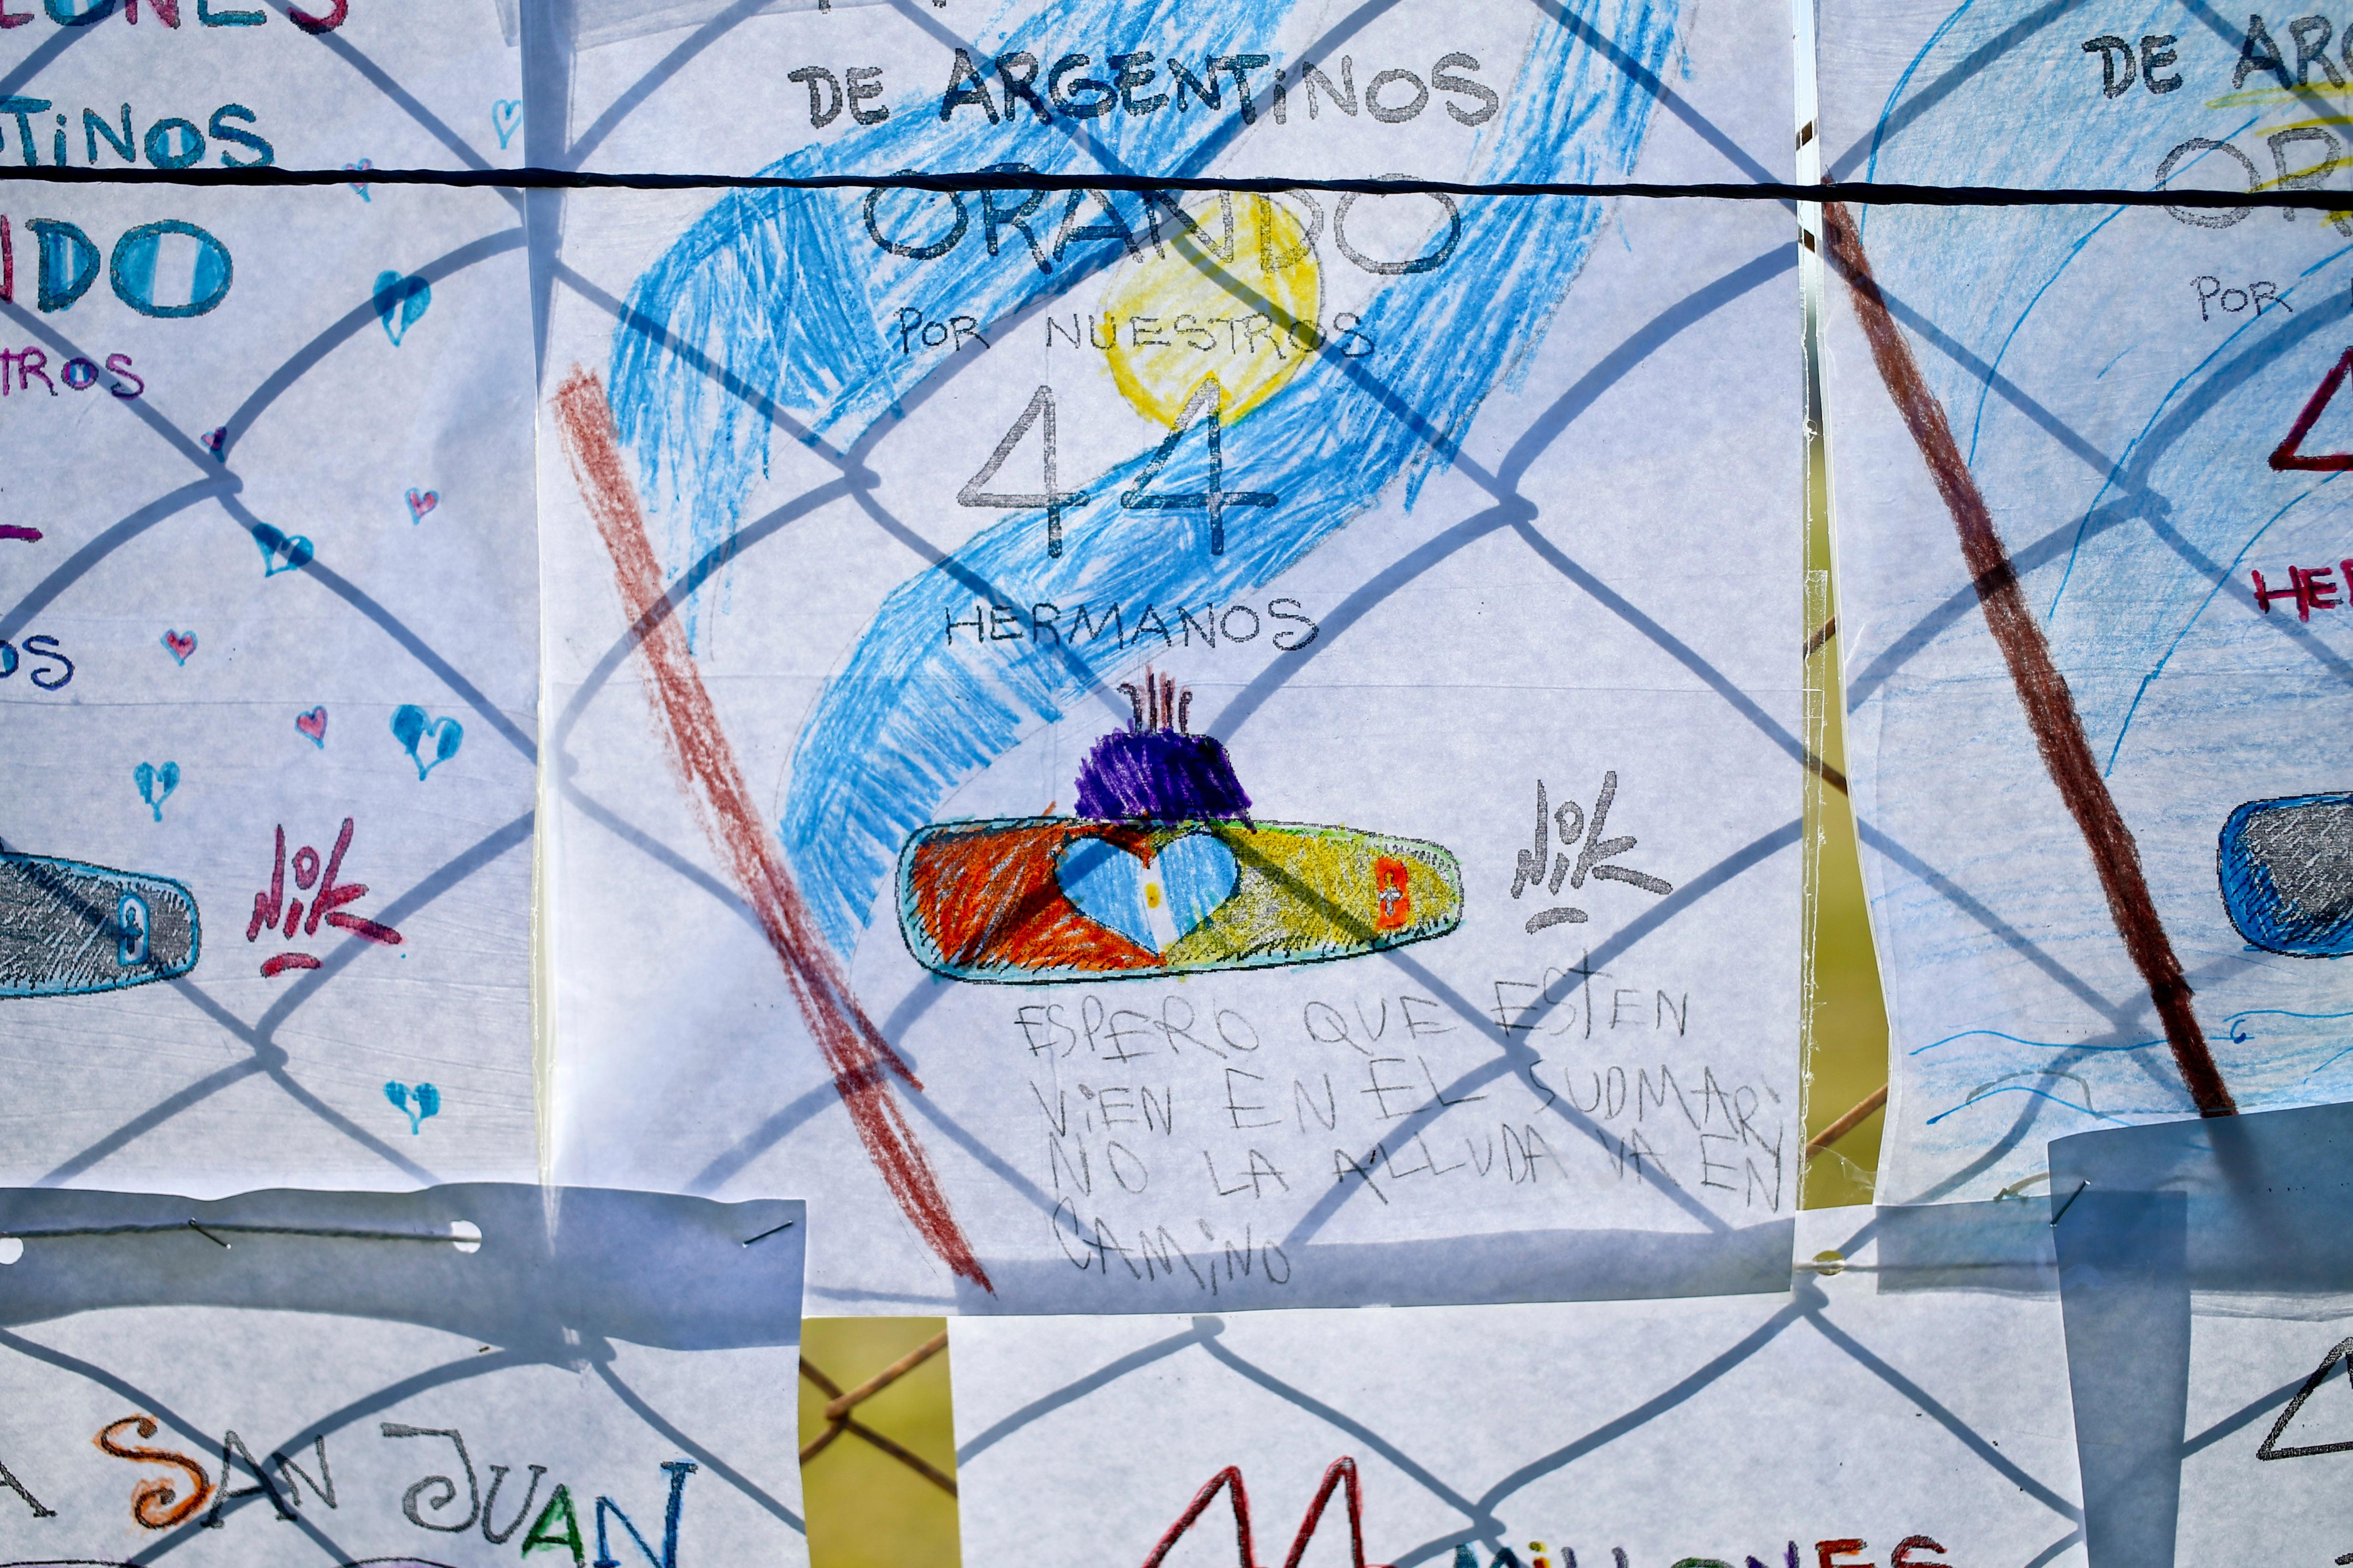 Children's drawings depicting the missing ARA San Juan submarine blanket hang on a fence enclosing the Mar de Plata Naval Base, in Argentina, Thursday, Nov. 23, 2017. A Navy spokesman said that the relatives of the crew have been informed that a sound detected during the search for the missing ARA San Juan submarine is consistent with that of an explosion, and that the search will continue until there is full certainty about the fate of the submarine. (AP Photo/Esteban Felix)